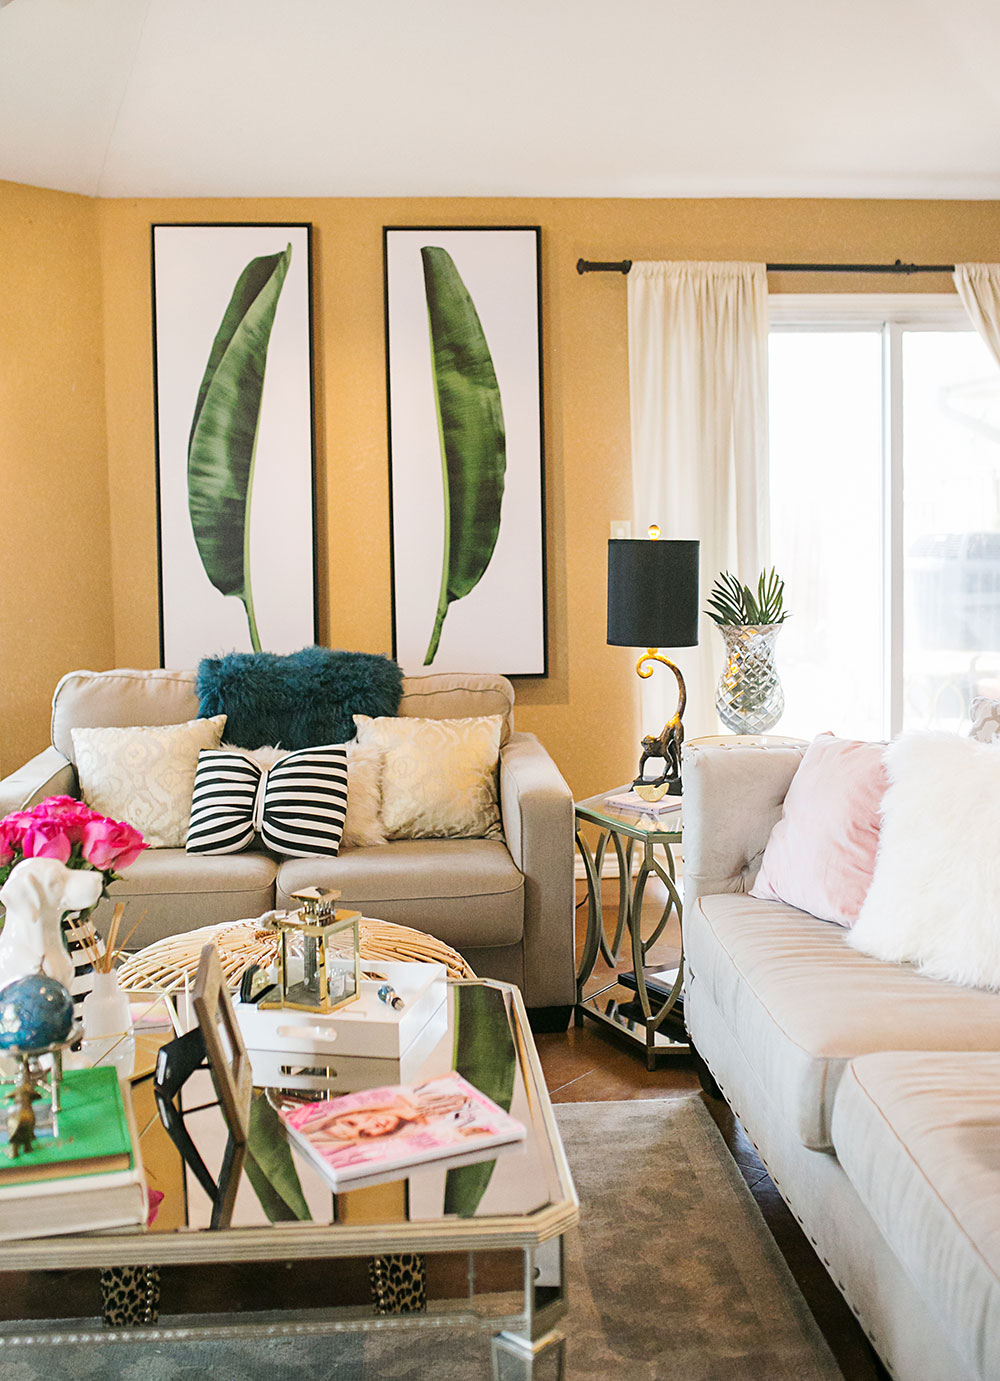 Our Tropical Chic Living Room Makeover   Vandi Fair